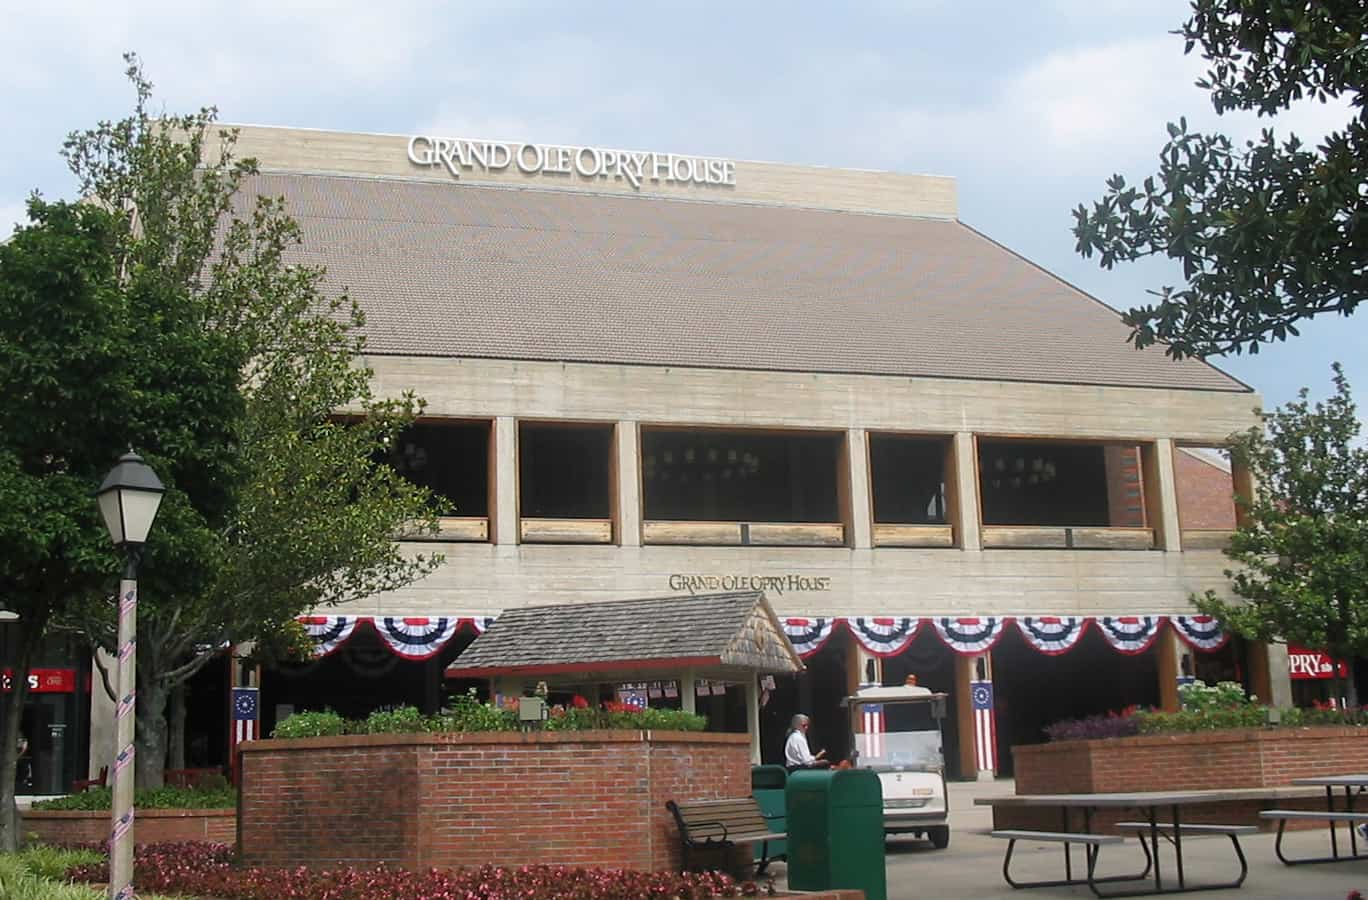 The Grand Ole Opry House, where Elvis first performed on stage, music facts